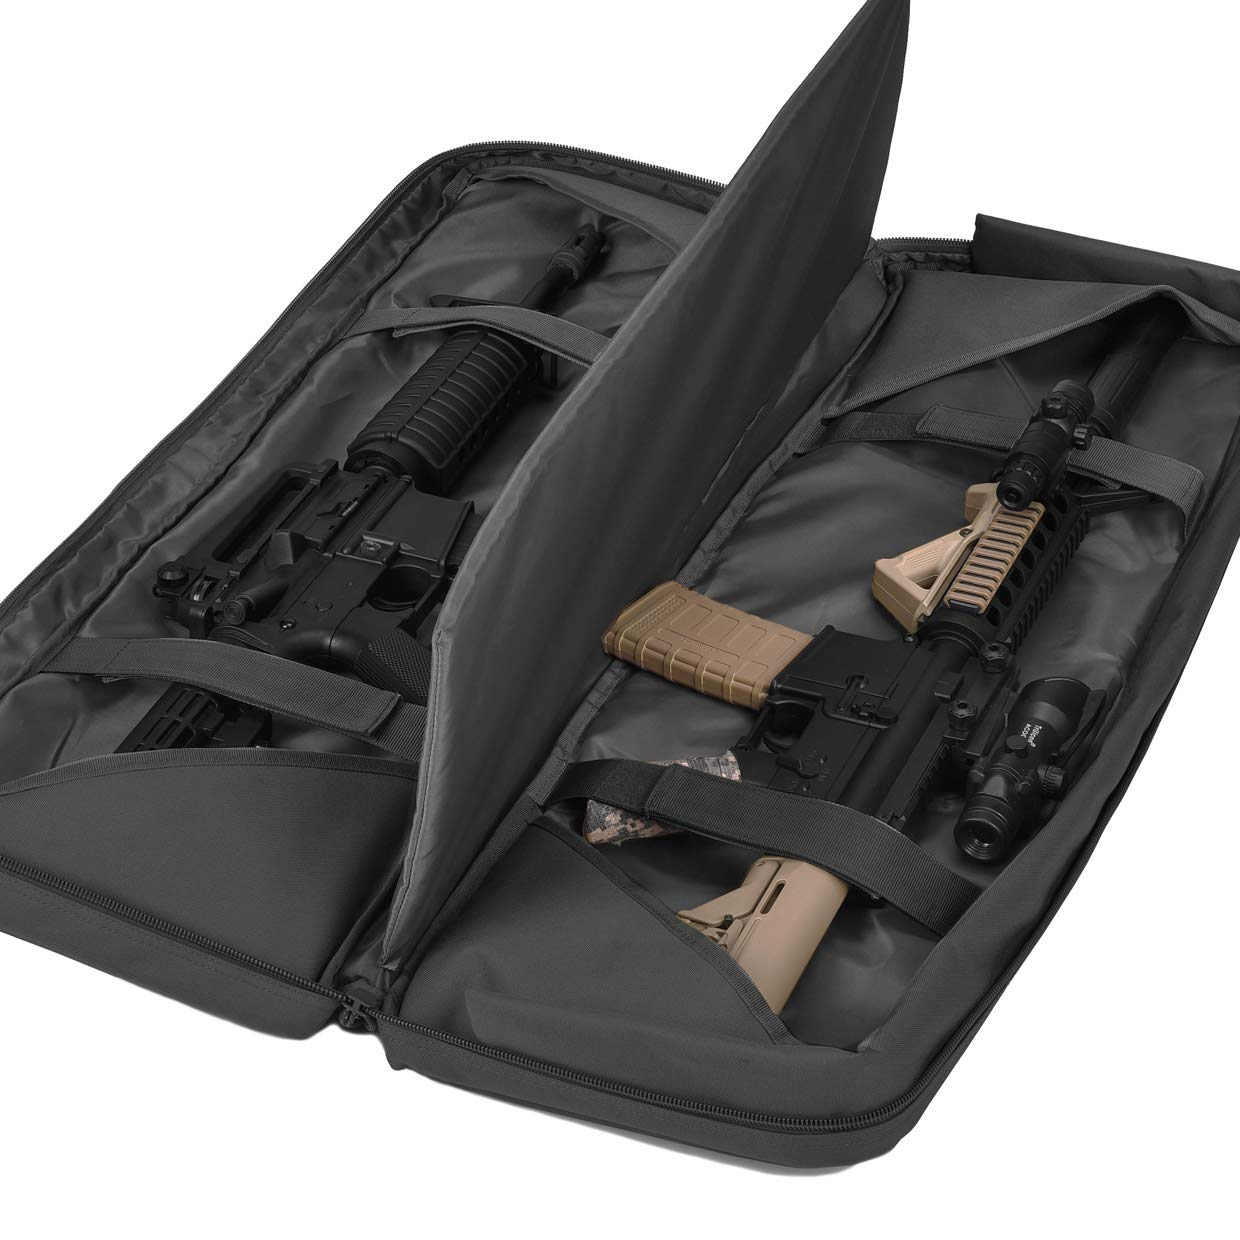 BOW-TAC Double Long Rifle Gun Case Bag Tactical Rifle Backpack Pistol Soft Firearm Transportation Carbine Case - Lockable Compartment, Available Length in 36'' 42'' 46'' by BOW-TAC (Image #4)